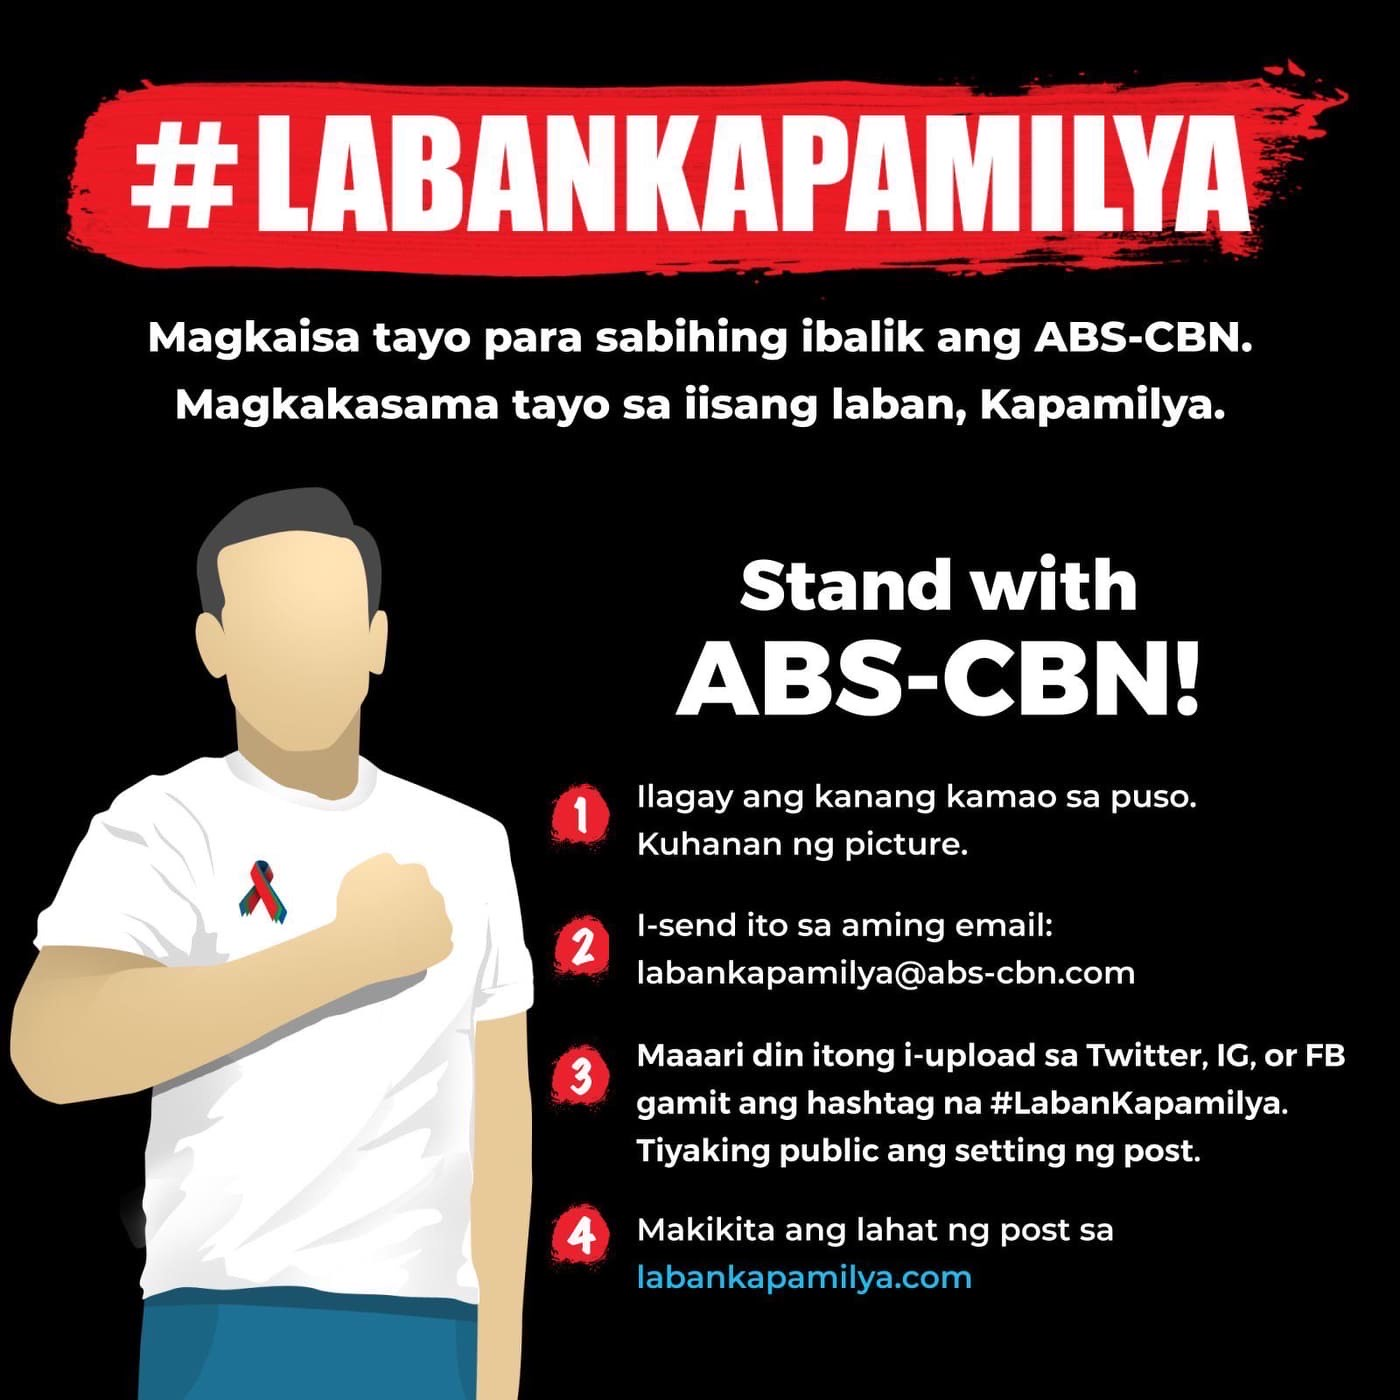 A message of thanks to Kapamilya supporters